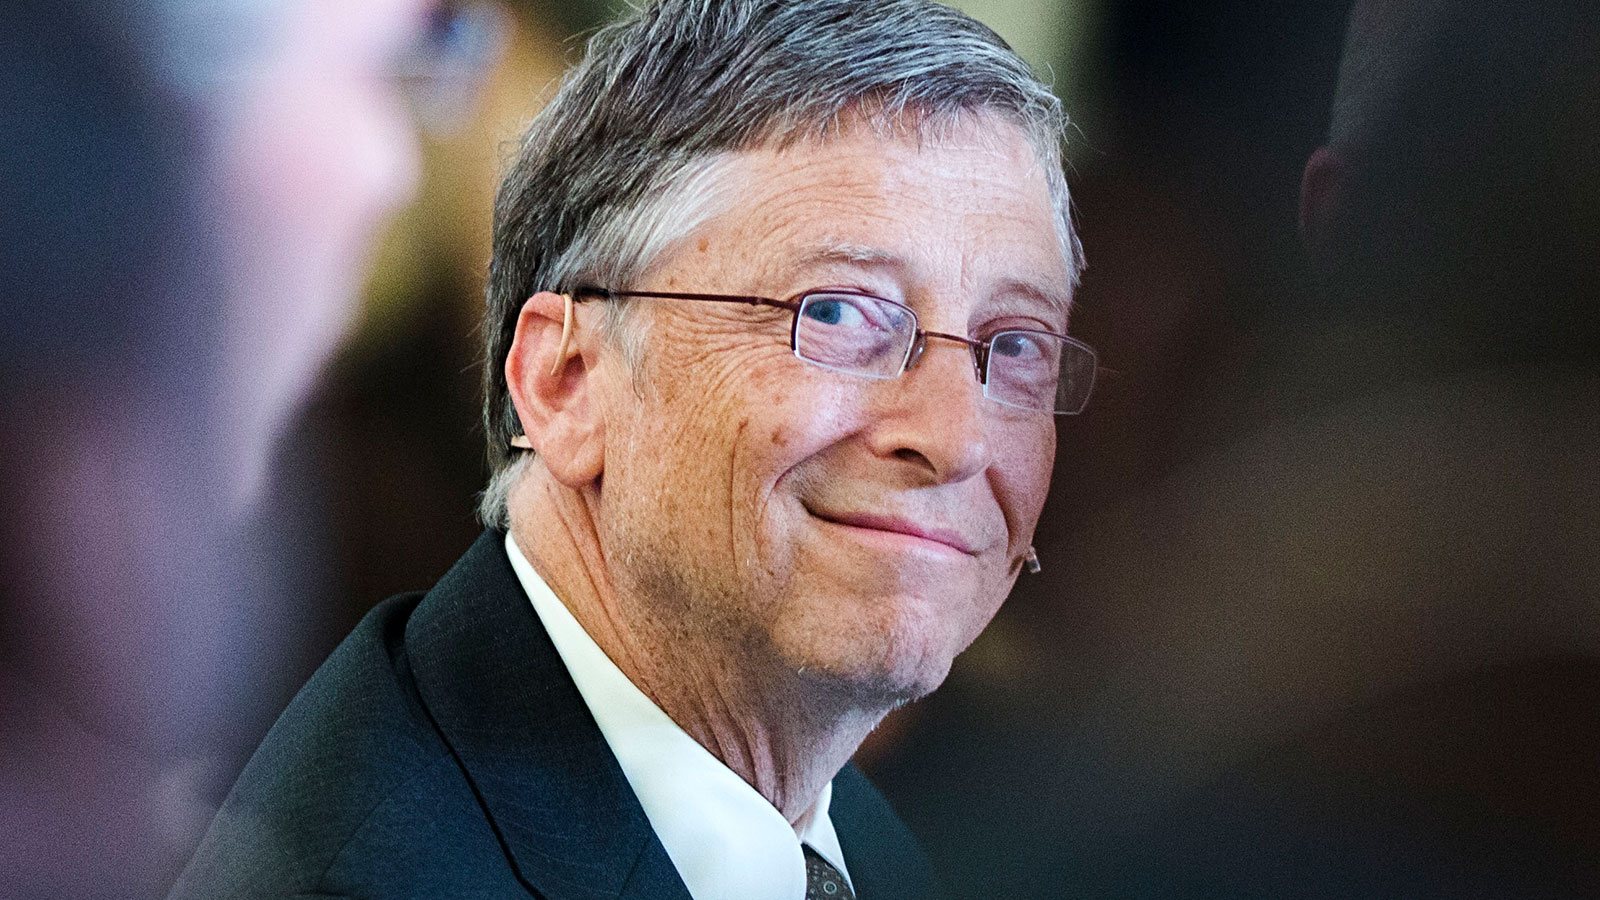 bill gates tweets to new grads: 'this is an amazing time to be alive